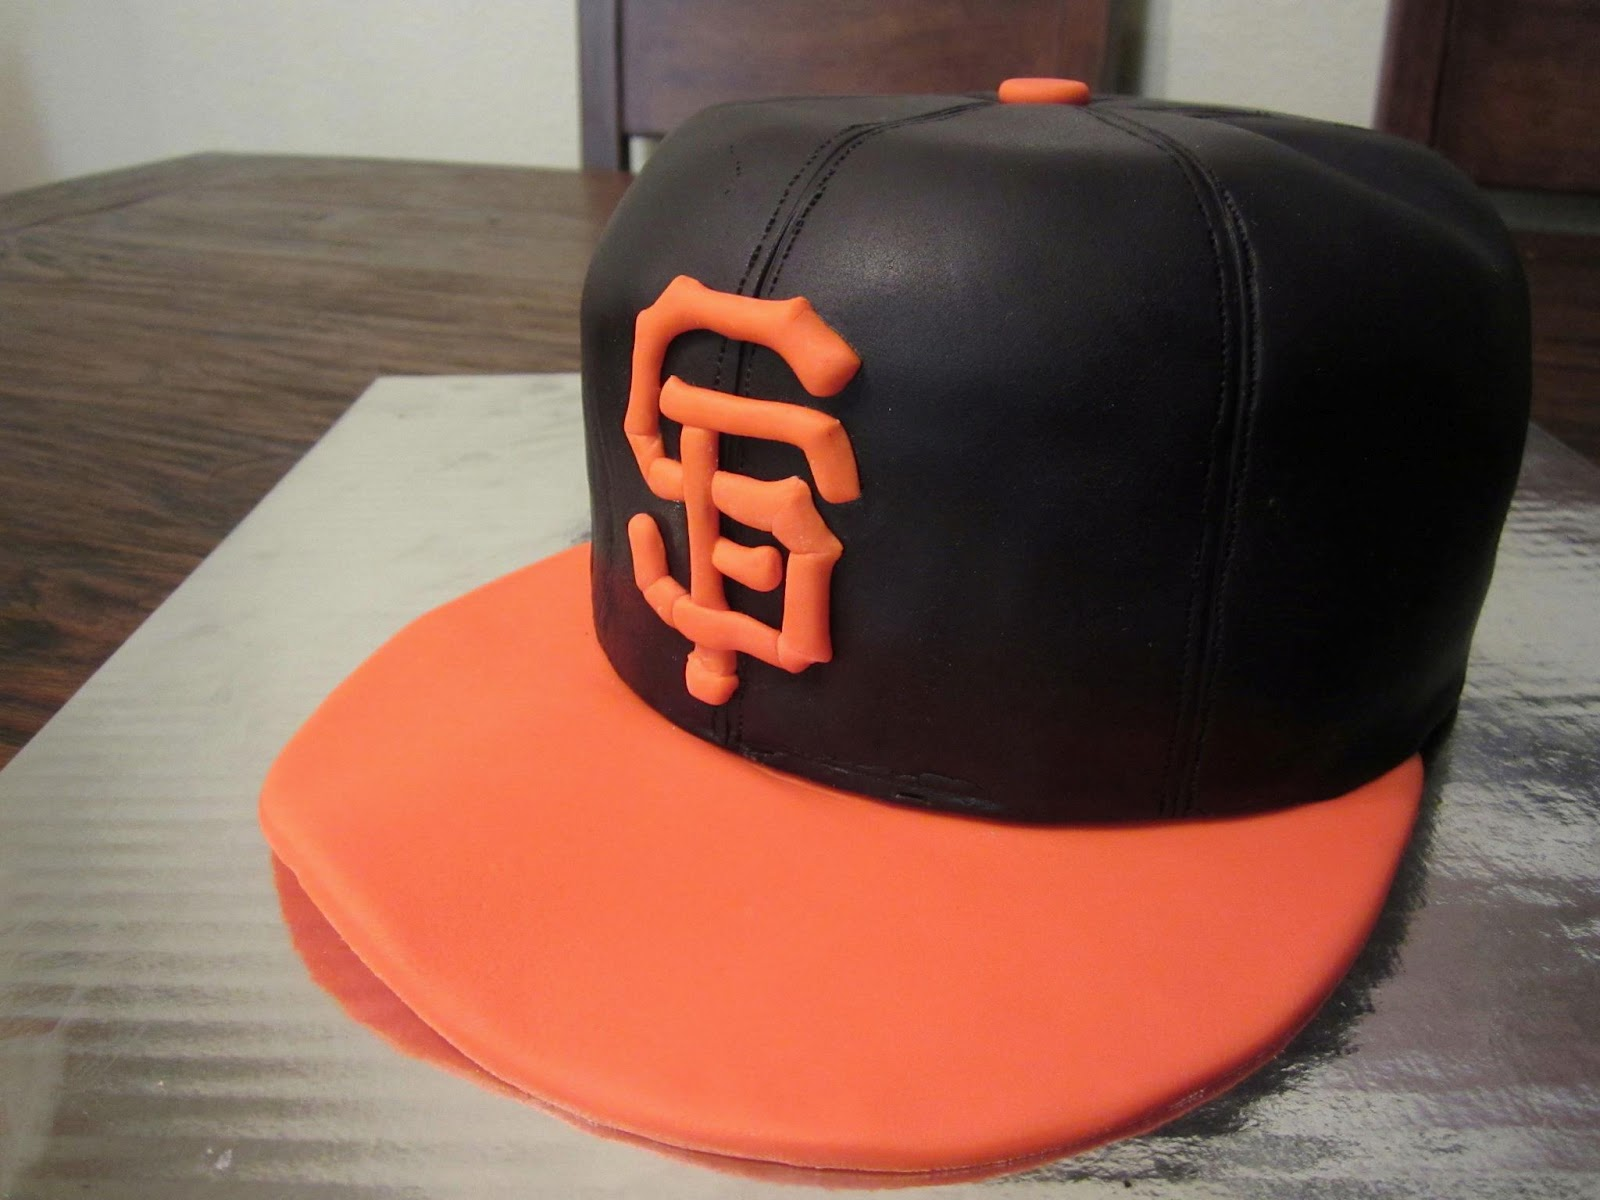 Did You Eat Yet Phils SF Giants Birthday Cake